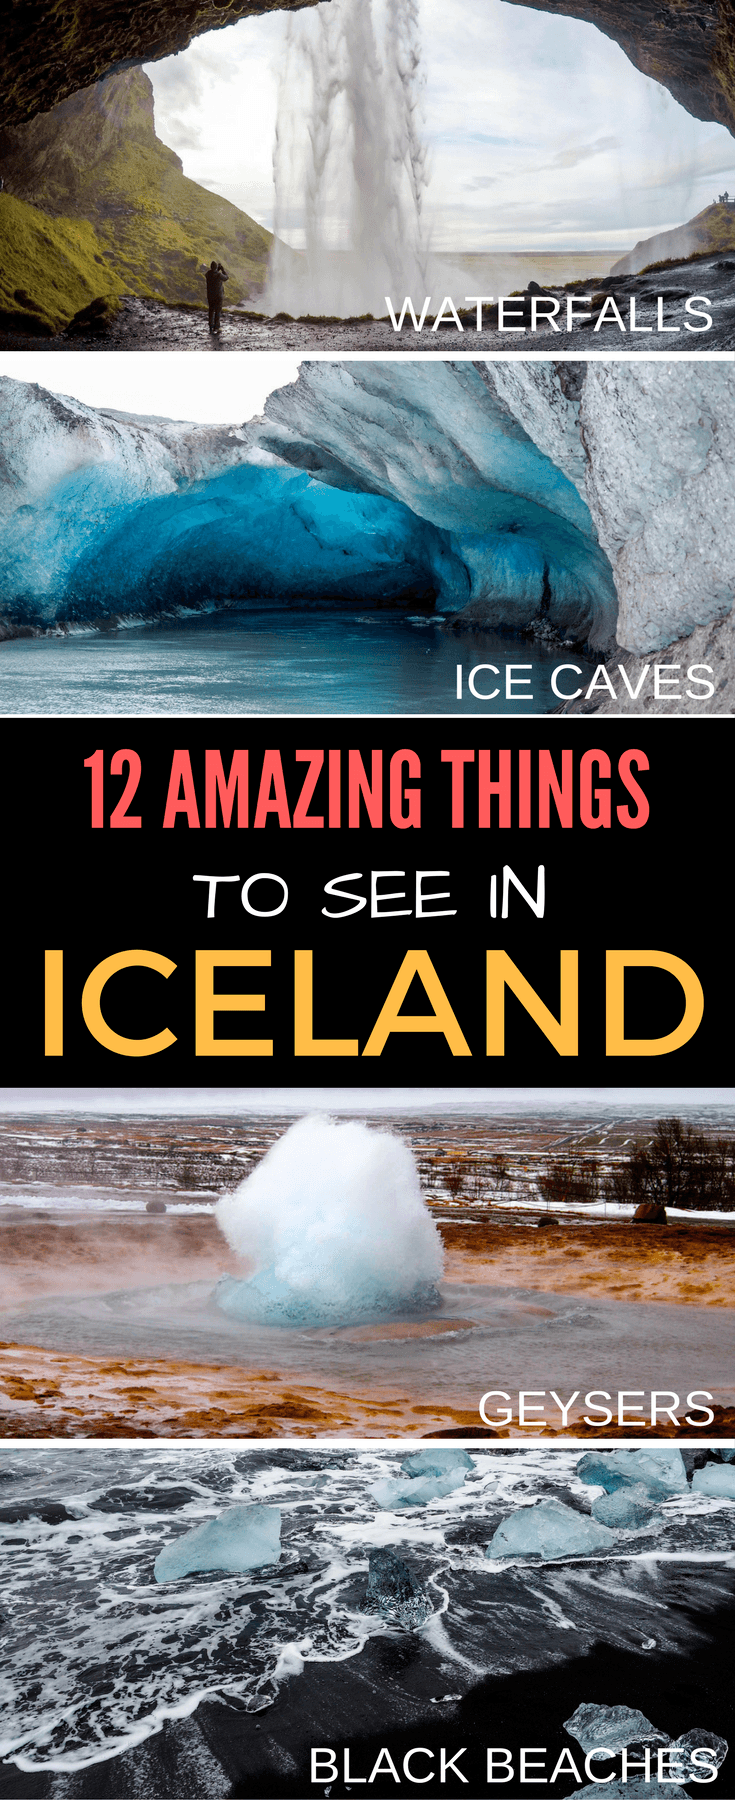 Cool things you can see in Iceland